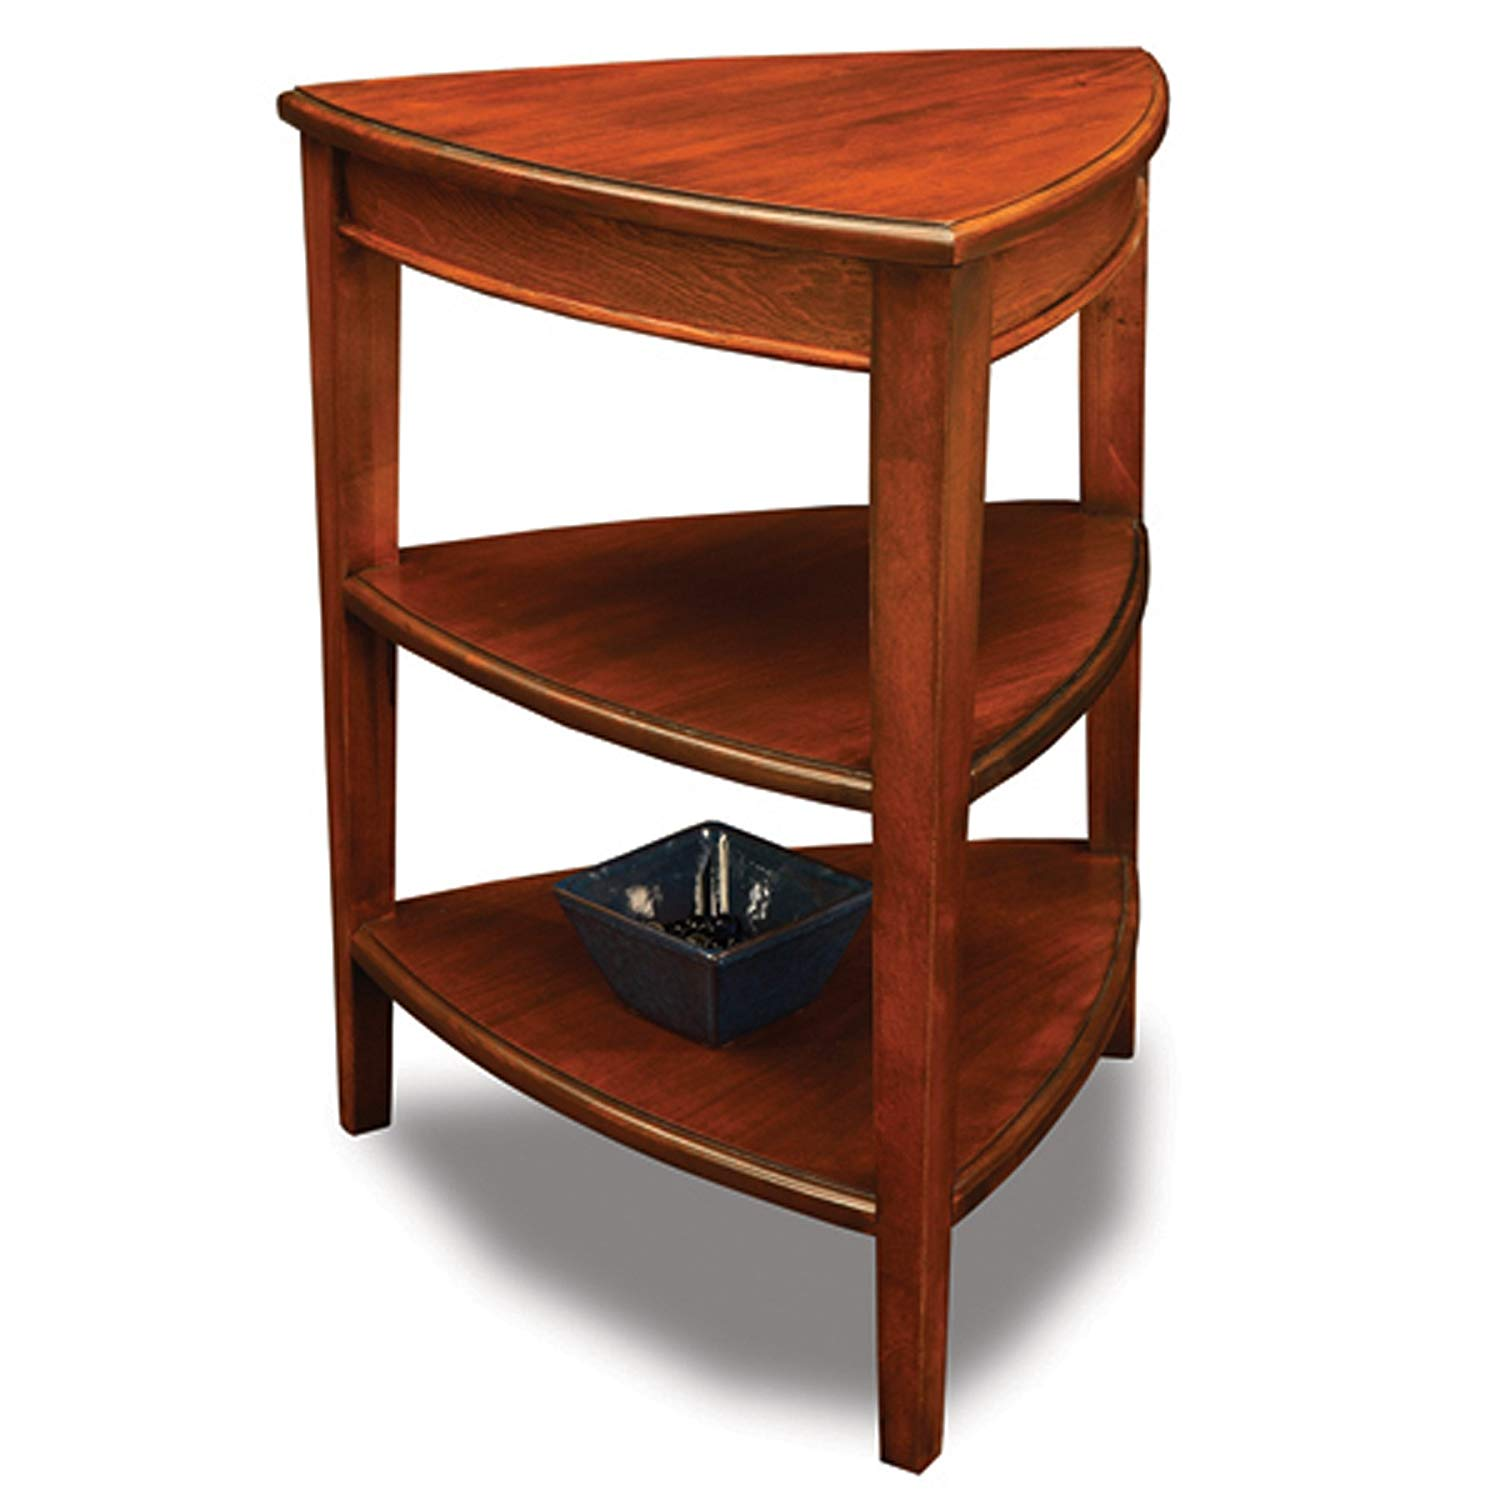 leick shield tier corner accent table kitchen dining triangle high room chairs carpet threshold strip ikea toy storage unit concrete outdoor setting rustic furniture edmonton